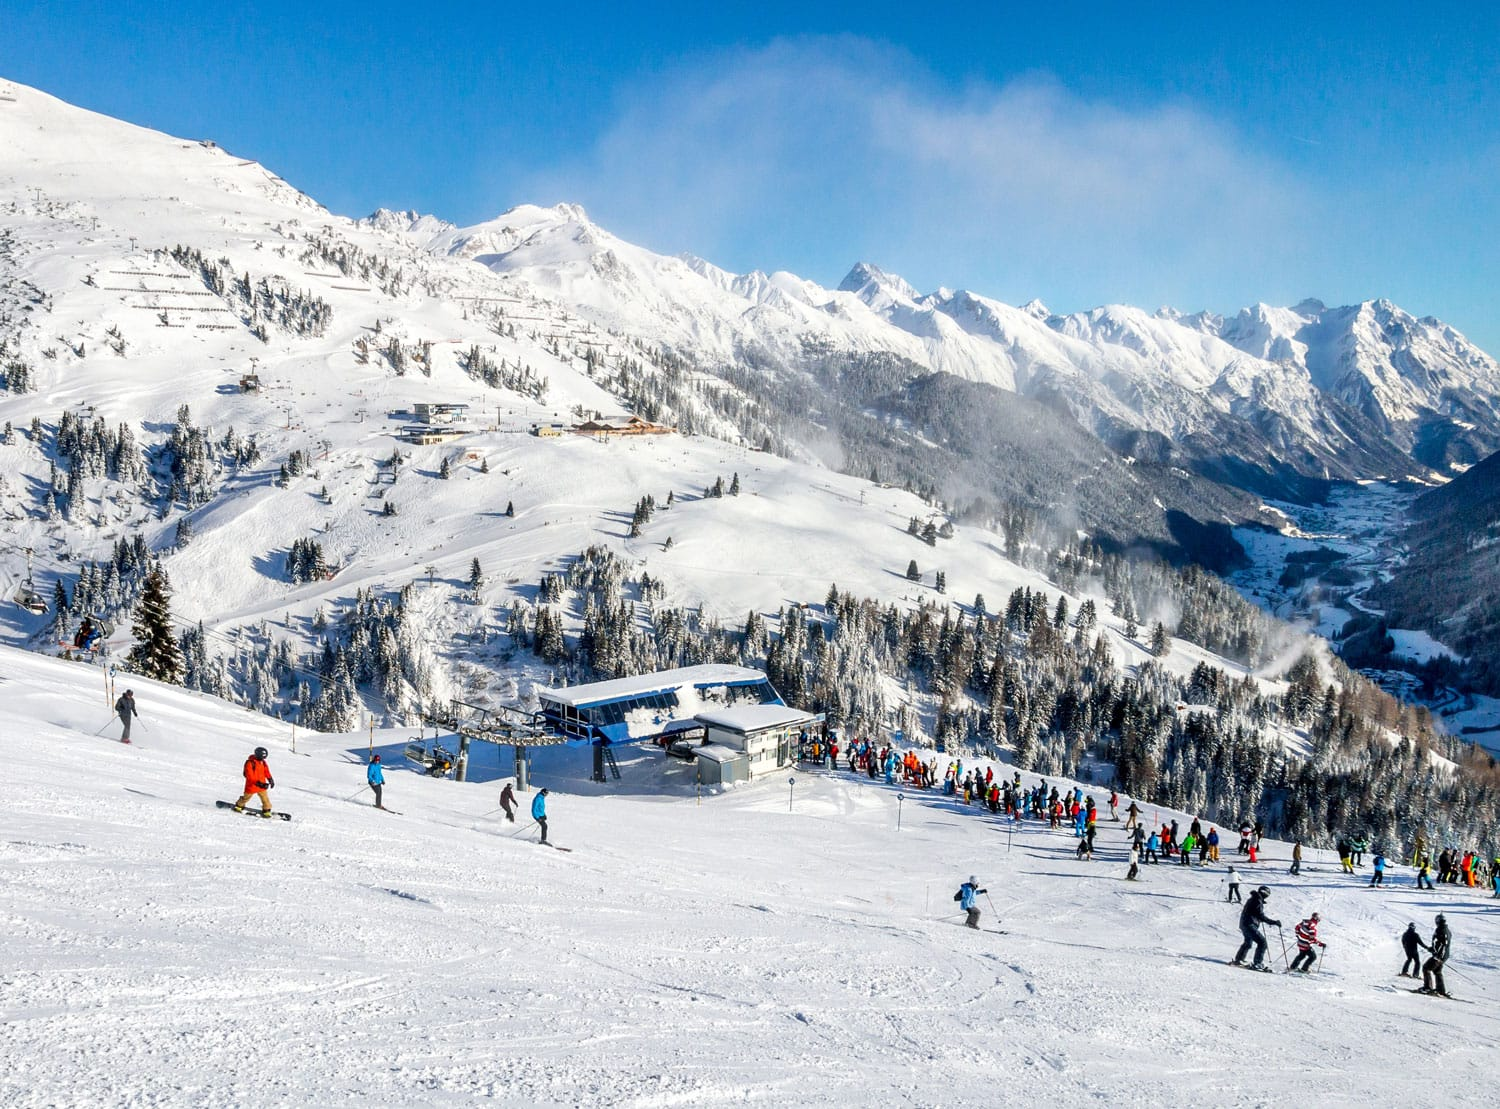 Skiers and snowboarders on the slopes of winter resort St. Anton, Austria.